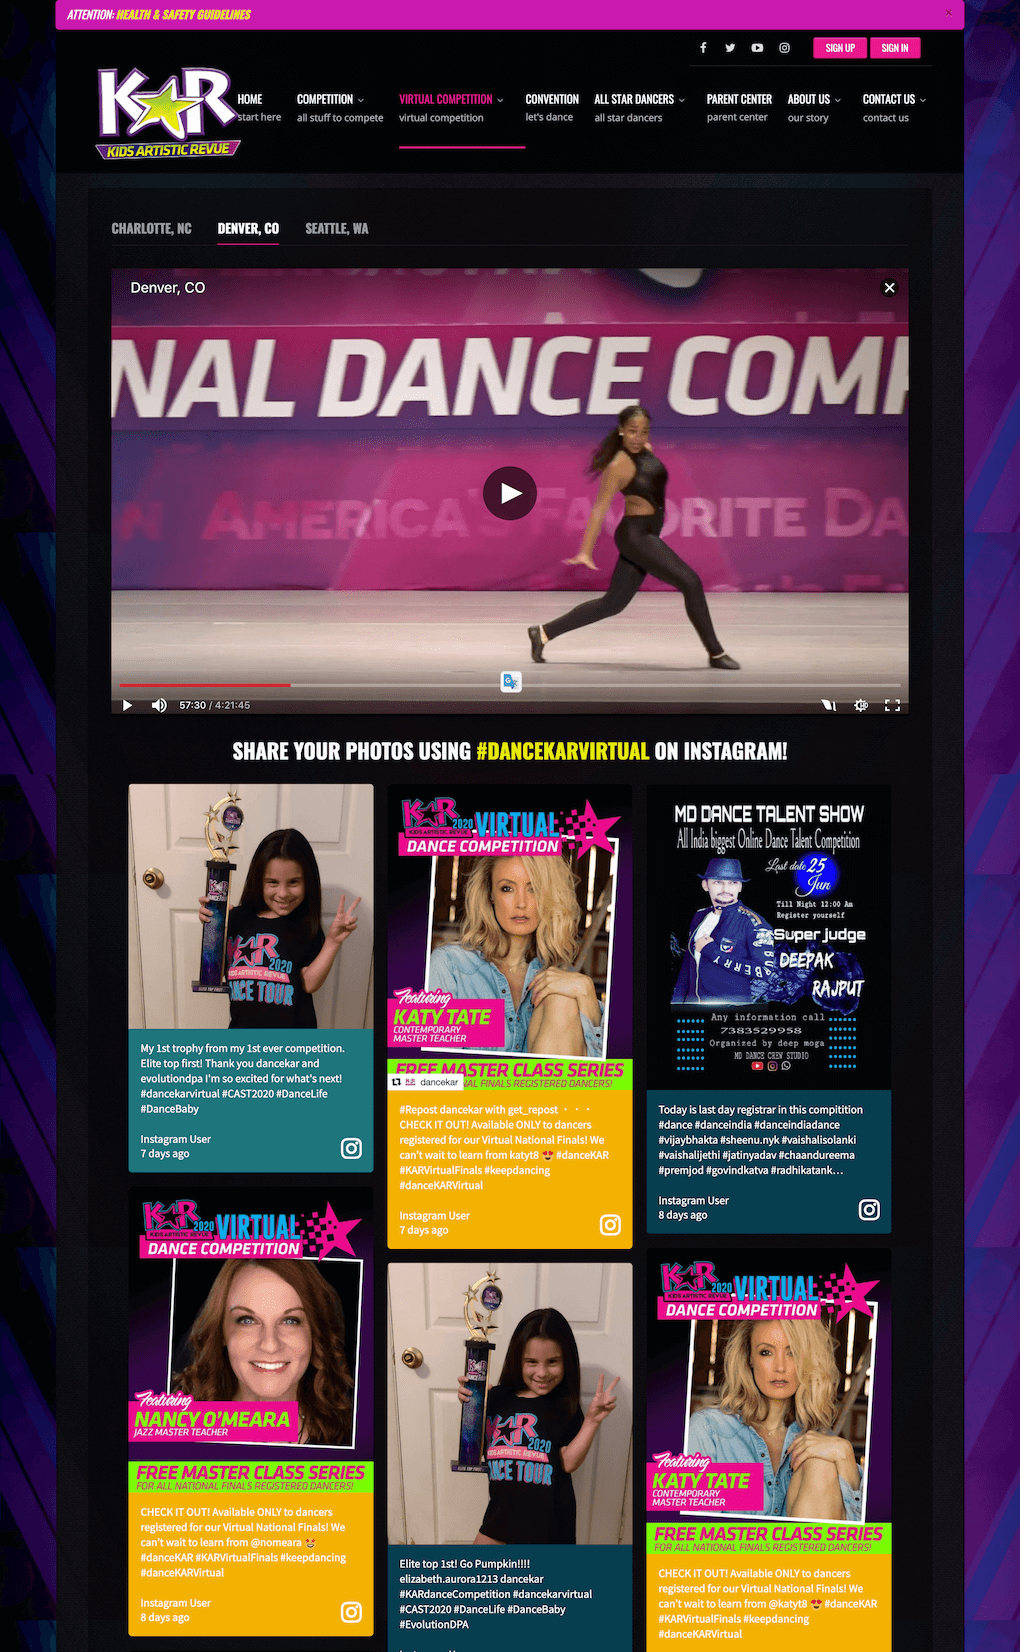 Screenshot of the DanceKAR.com website with a livestream and social media wall embedded. The video is showing a young person dancing. On the social wall, participants are sharing photos of their awards while DanceKAR accounts are promoting dance classes open to participants.